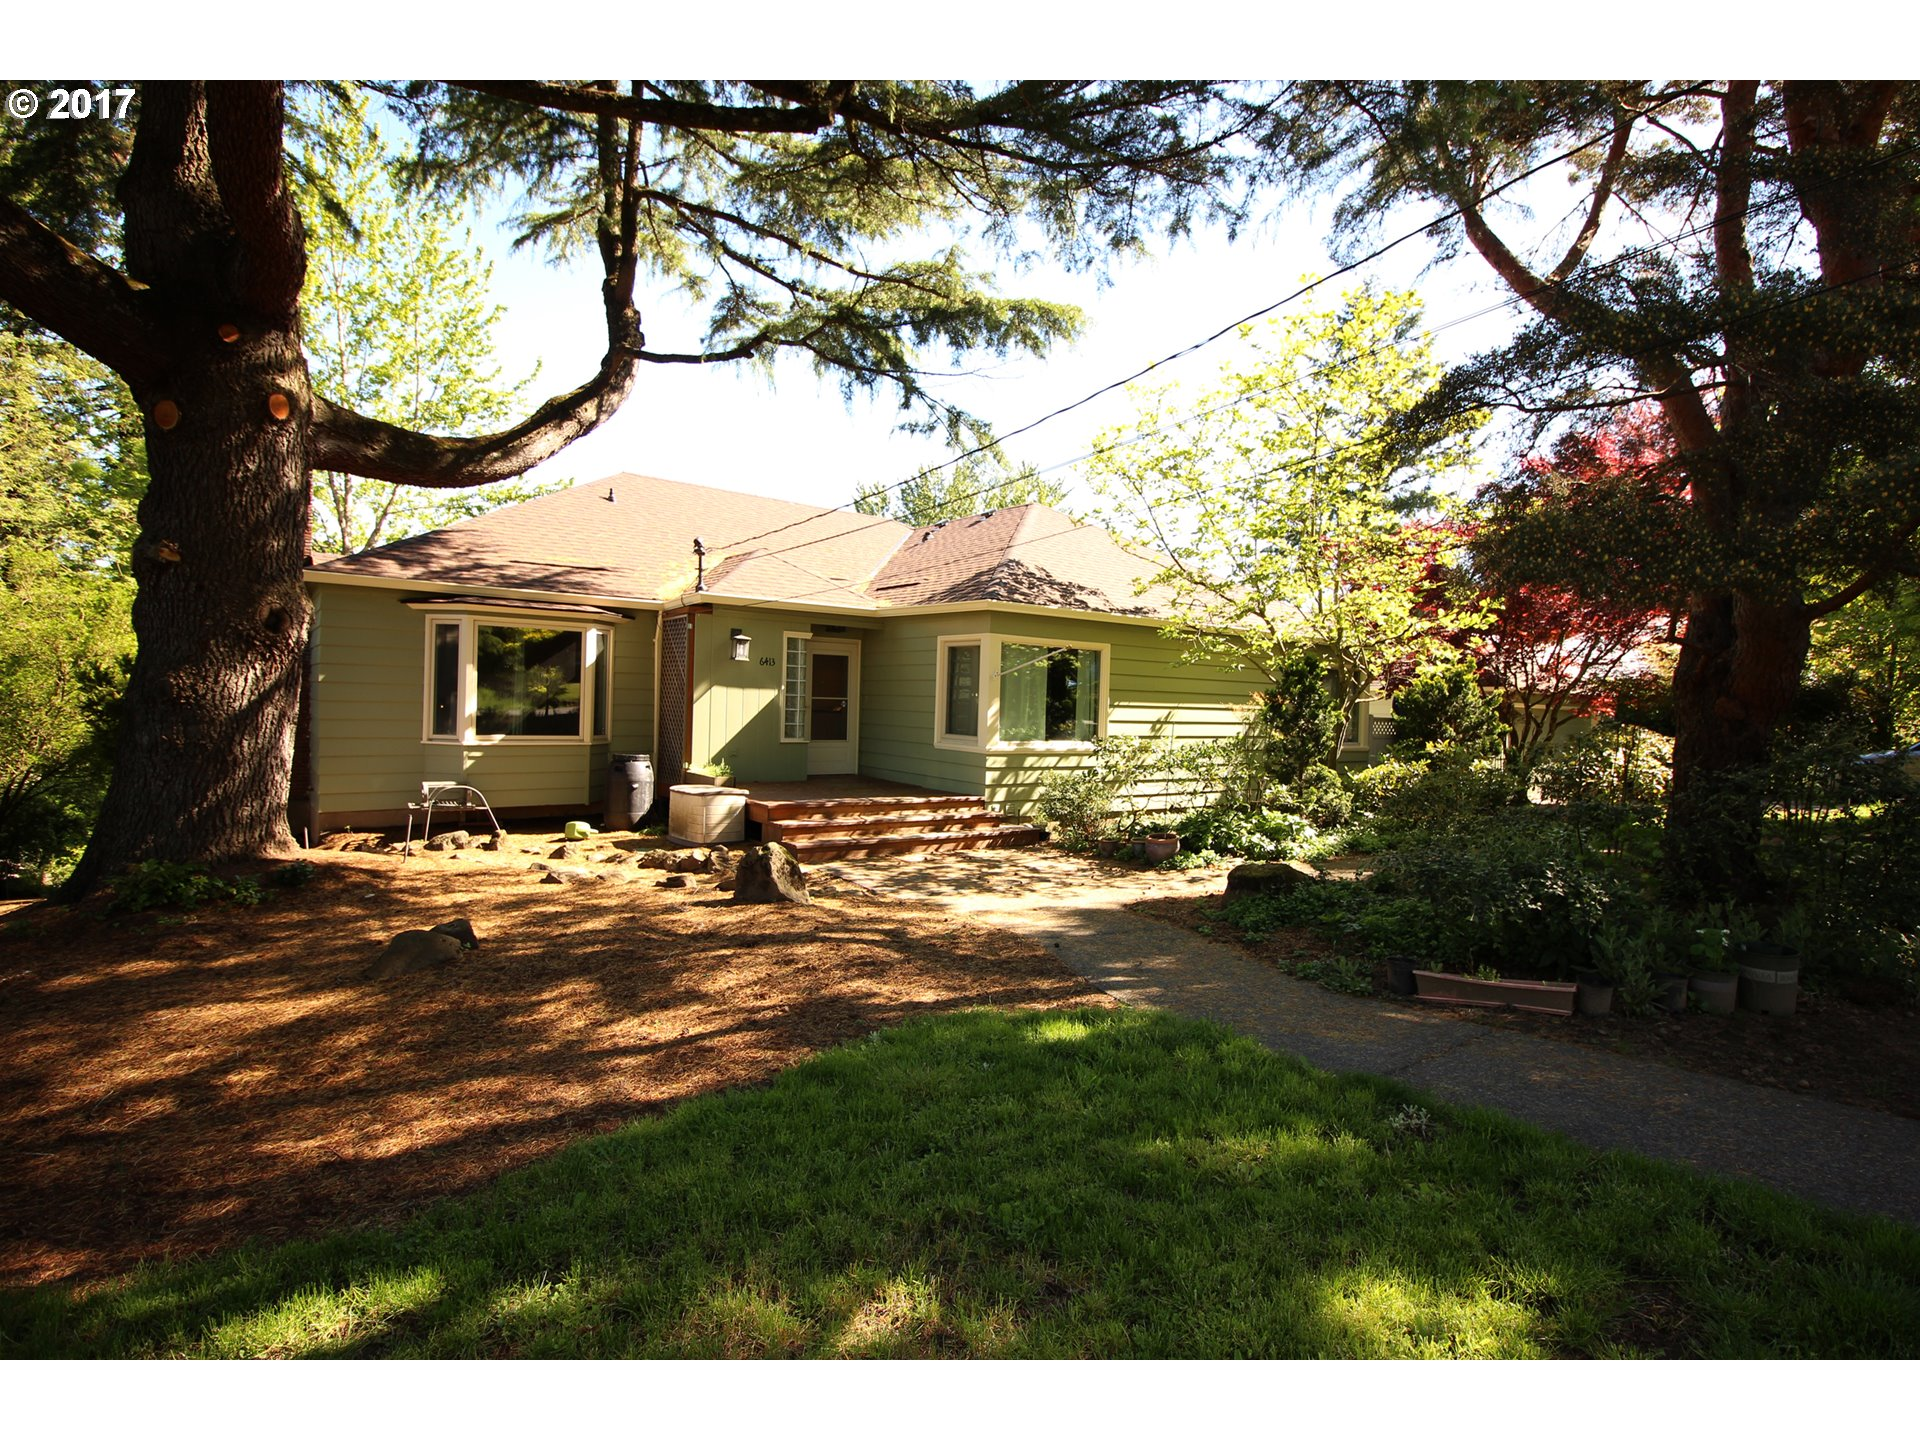 3824 sq. ft 5 bedrooms 4 bathrooms  House For Sale,Portland, OR